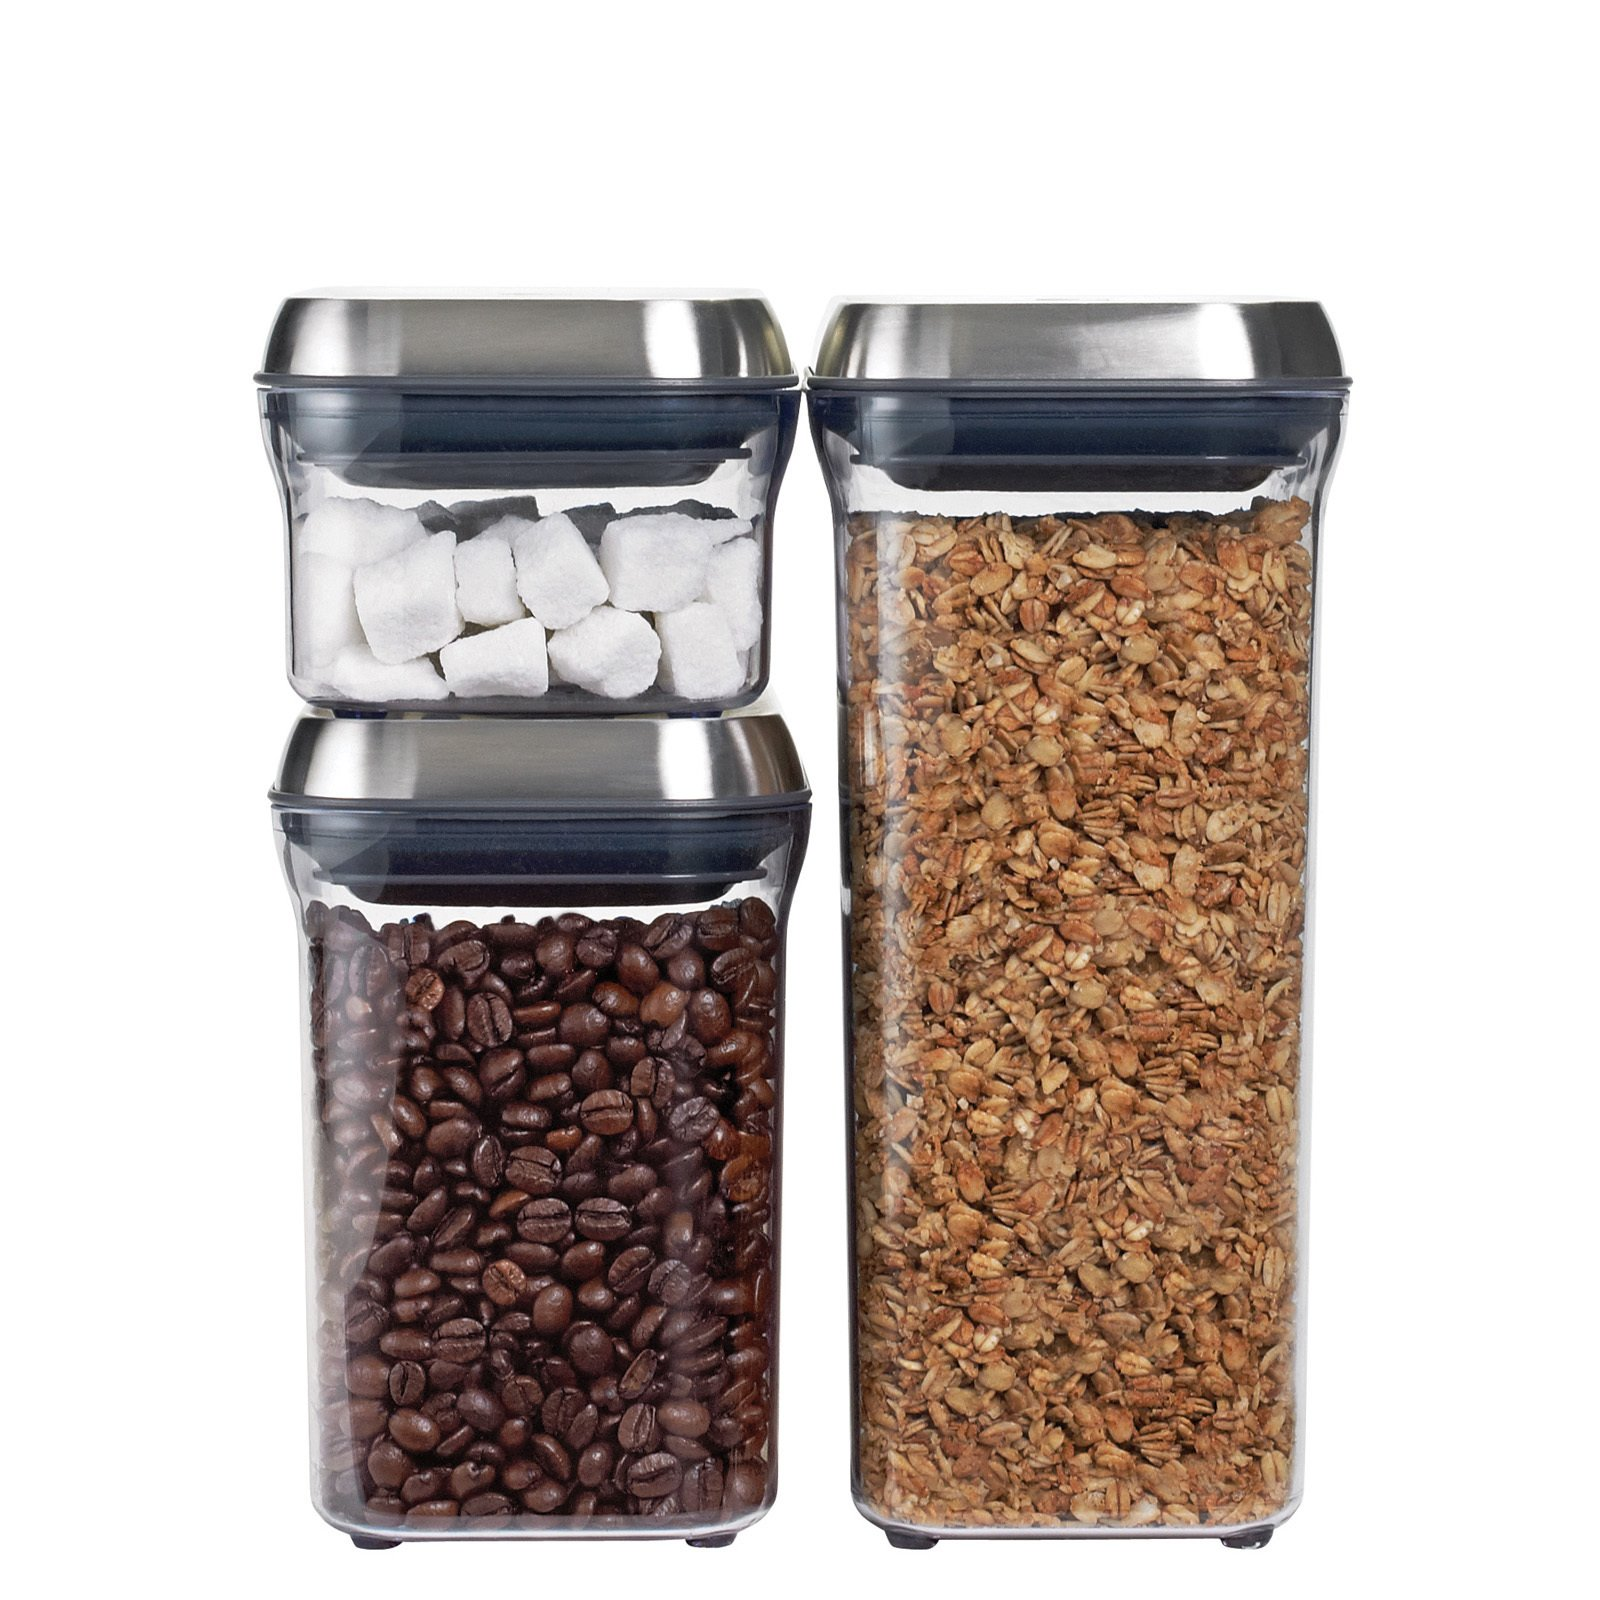 We long loved the POP containers from OXO. With one push they open and with another they create an airtight seal. Come October, the containers will be available with this new stainless steel lid finish.  New from OXO by Miyoko Ohtake